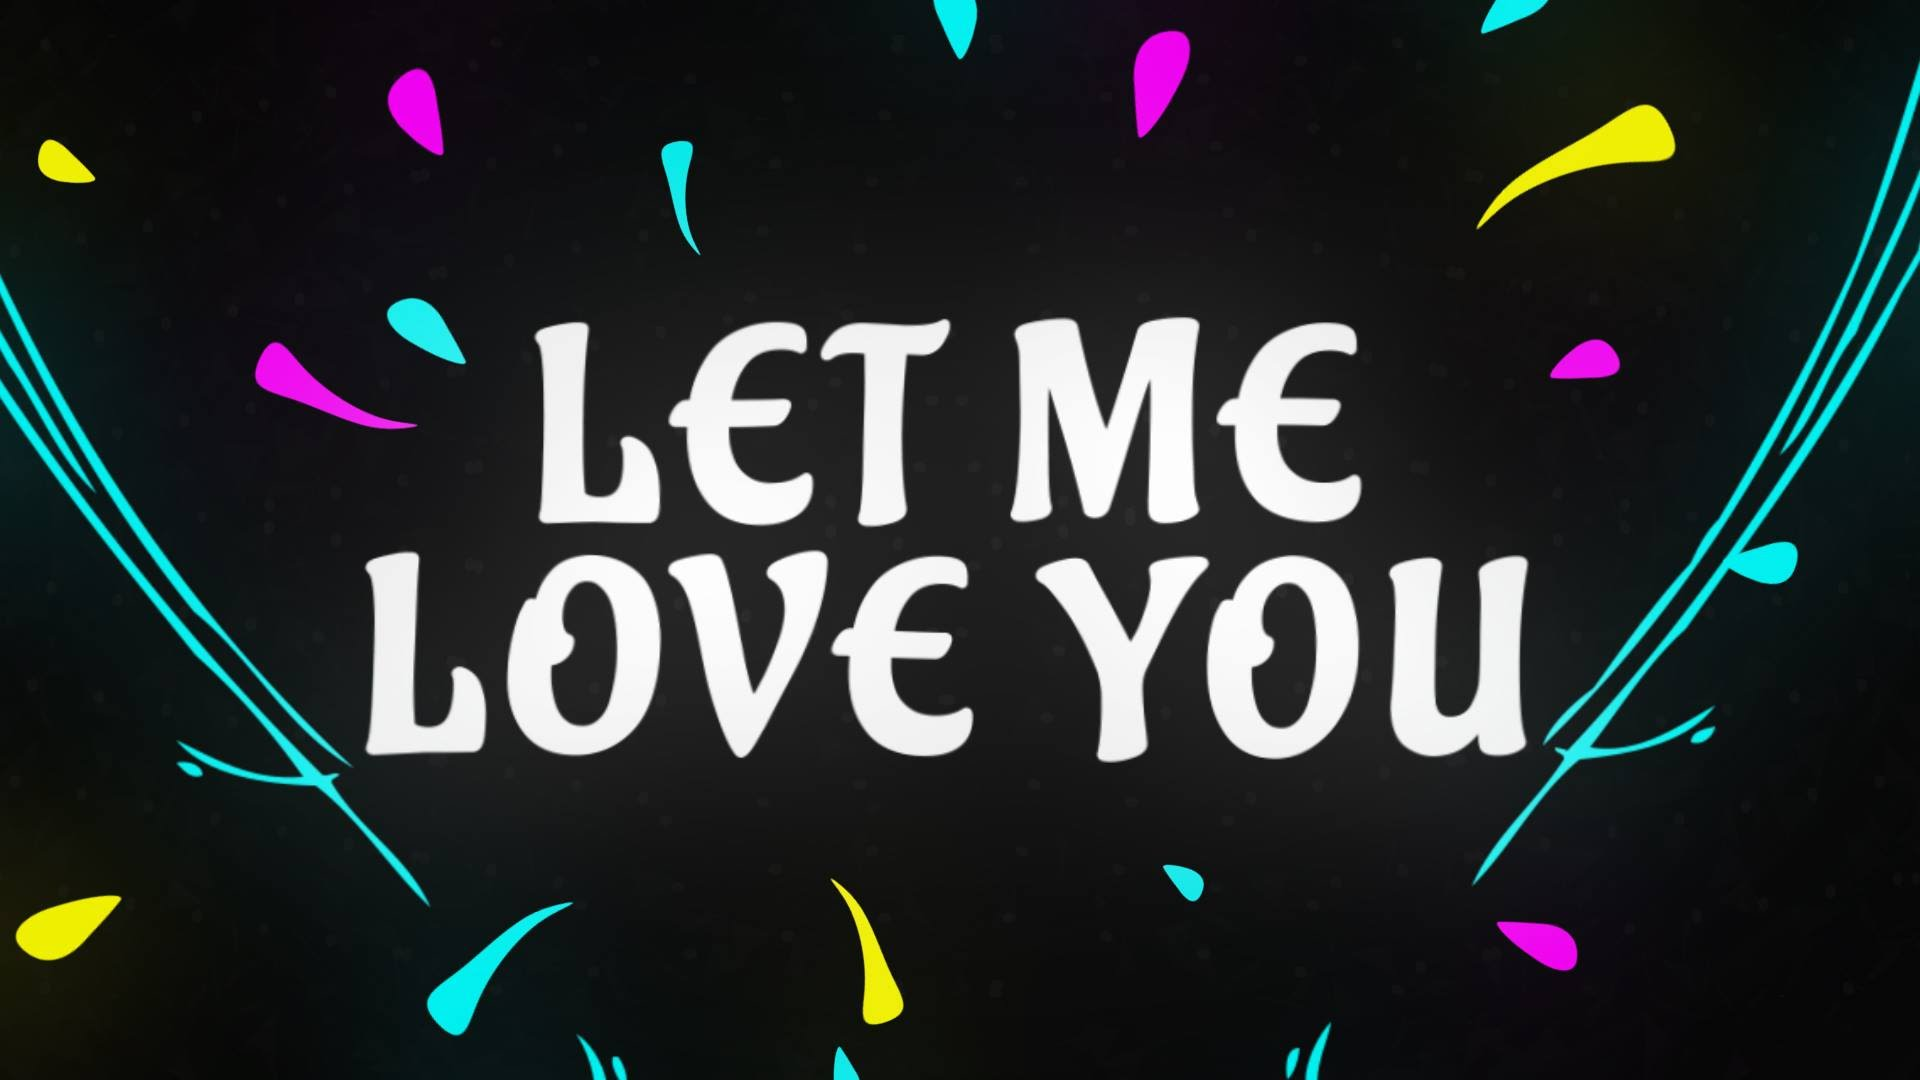 DJ Snake feat. Justin Bieber, Let Me Love You: testo, parole e video